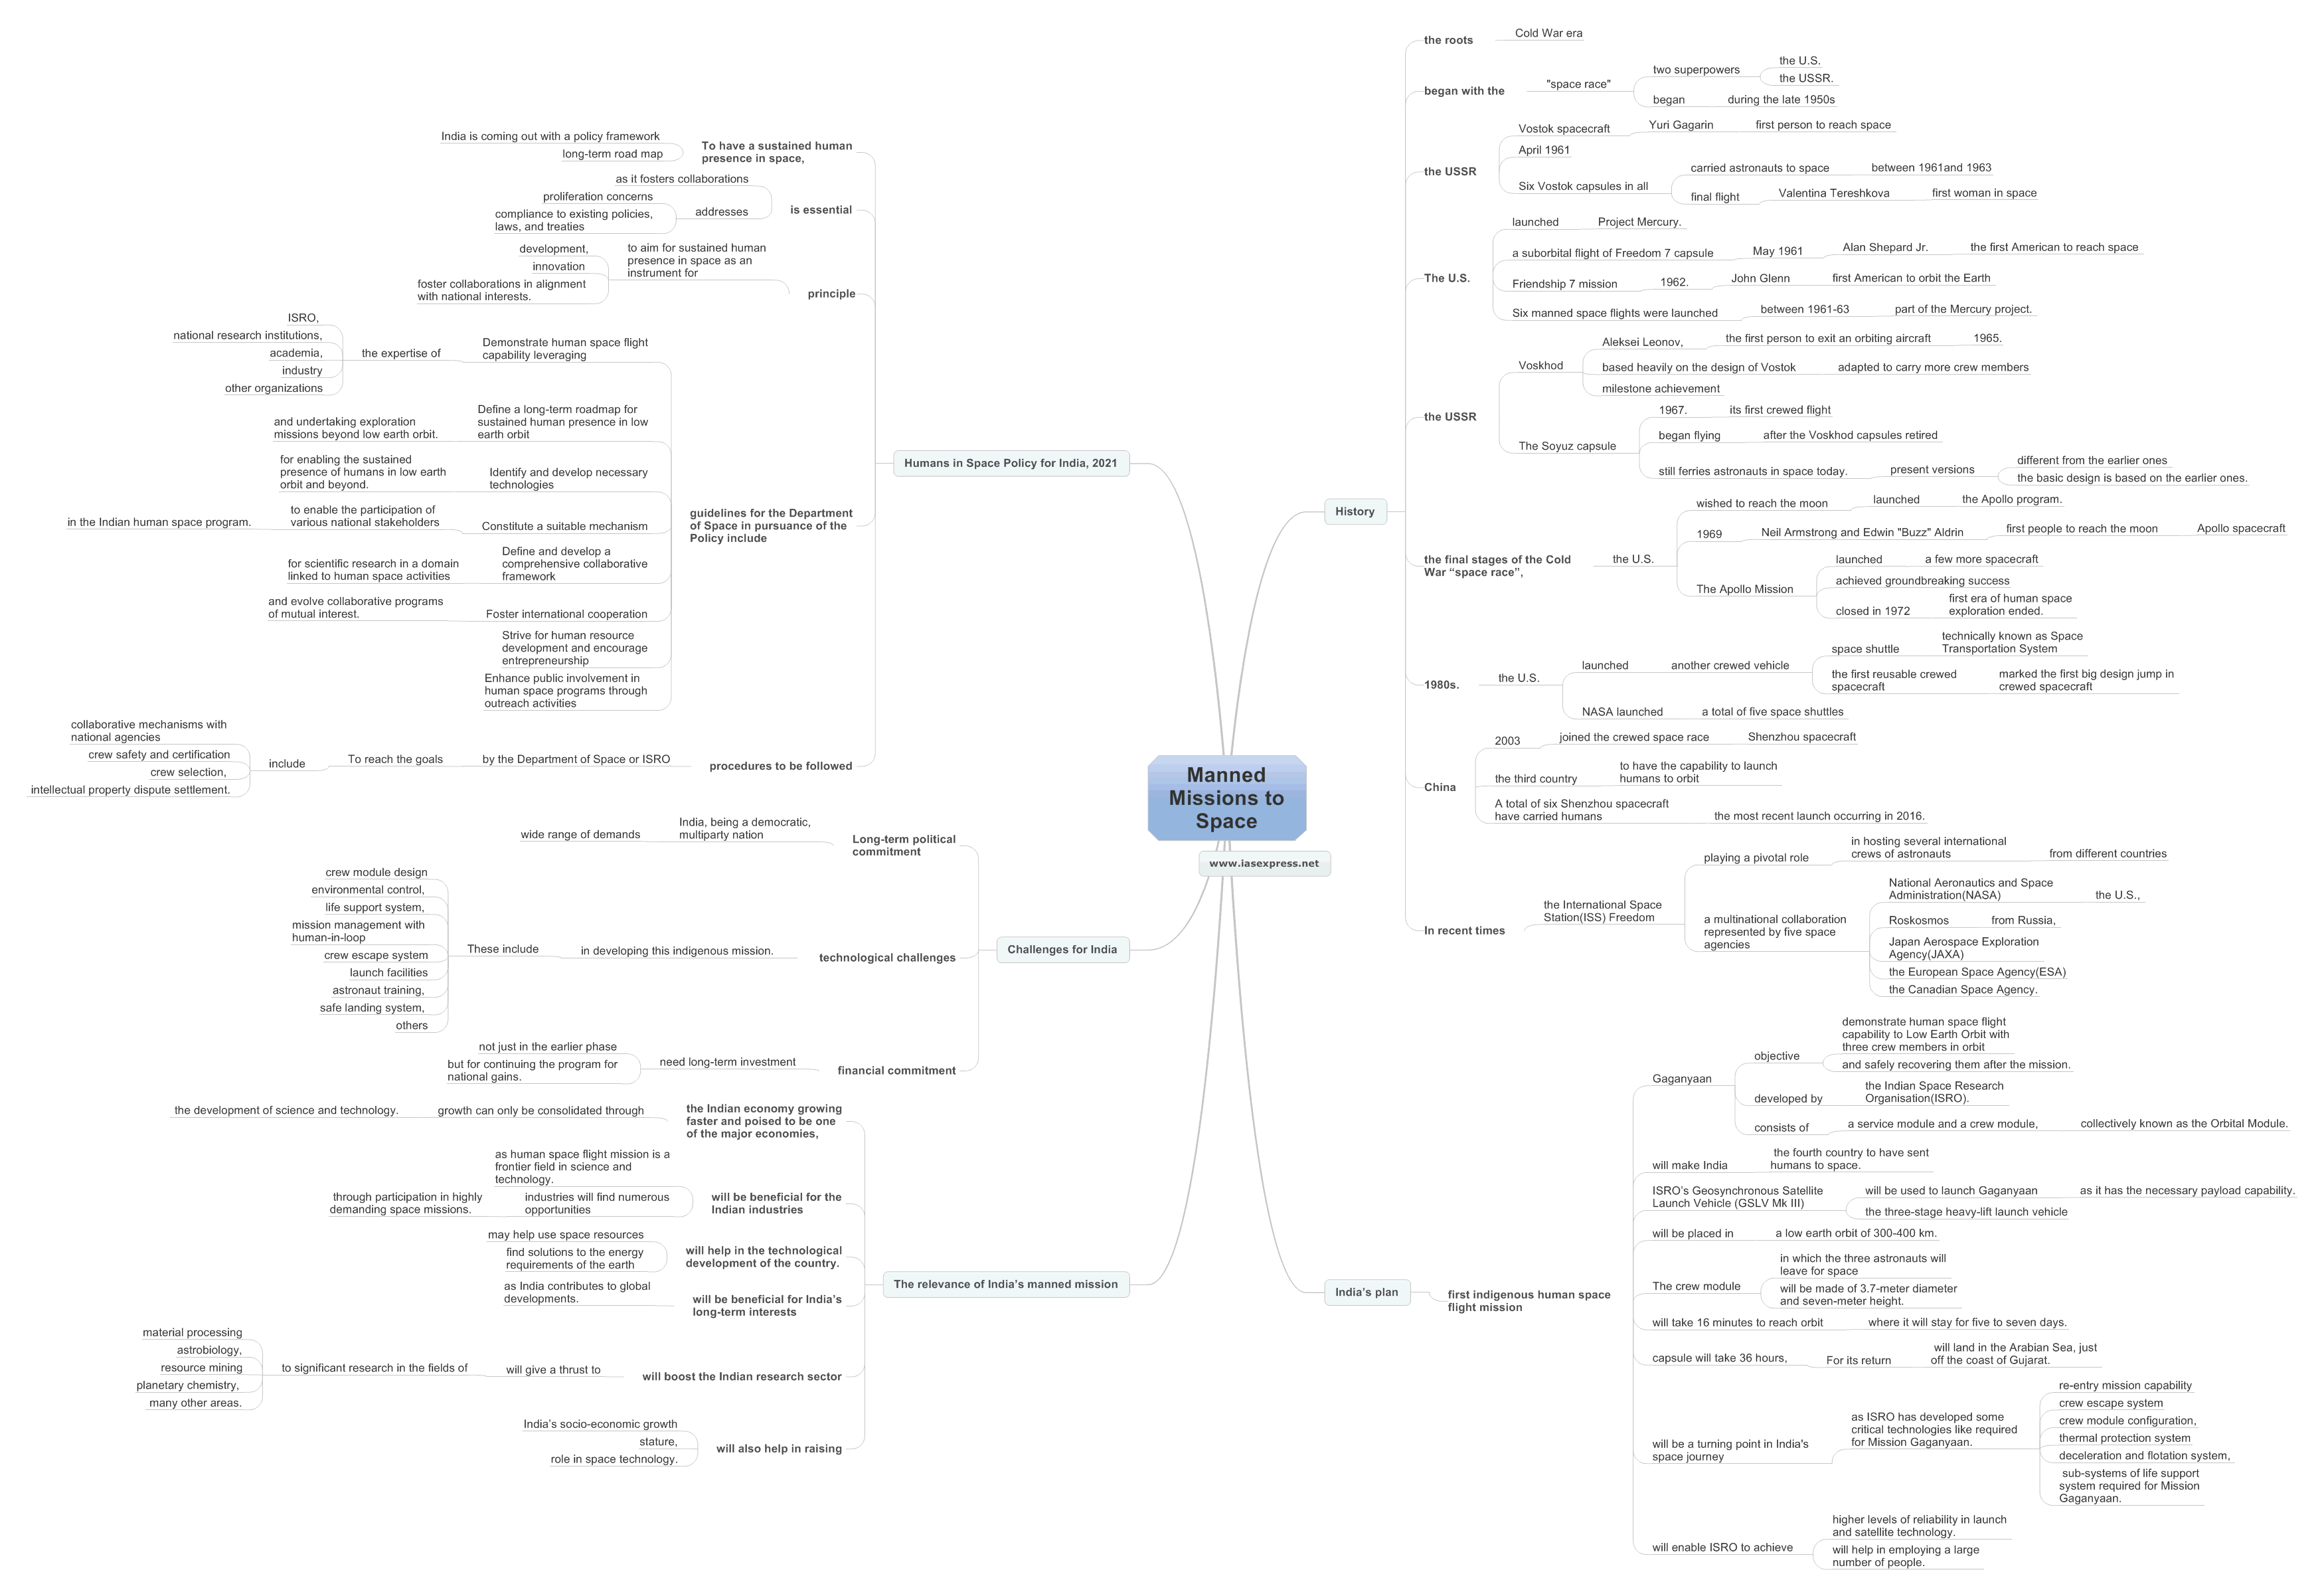 Manned-Missions-to-Space mindmap